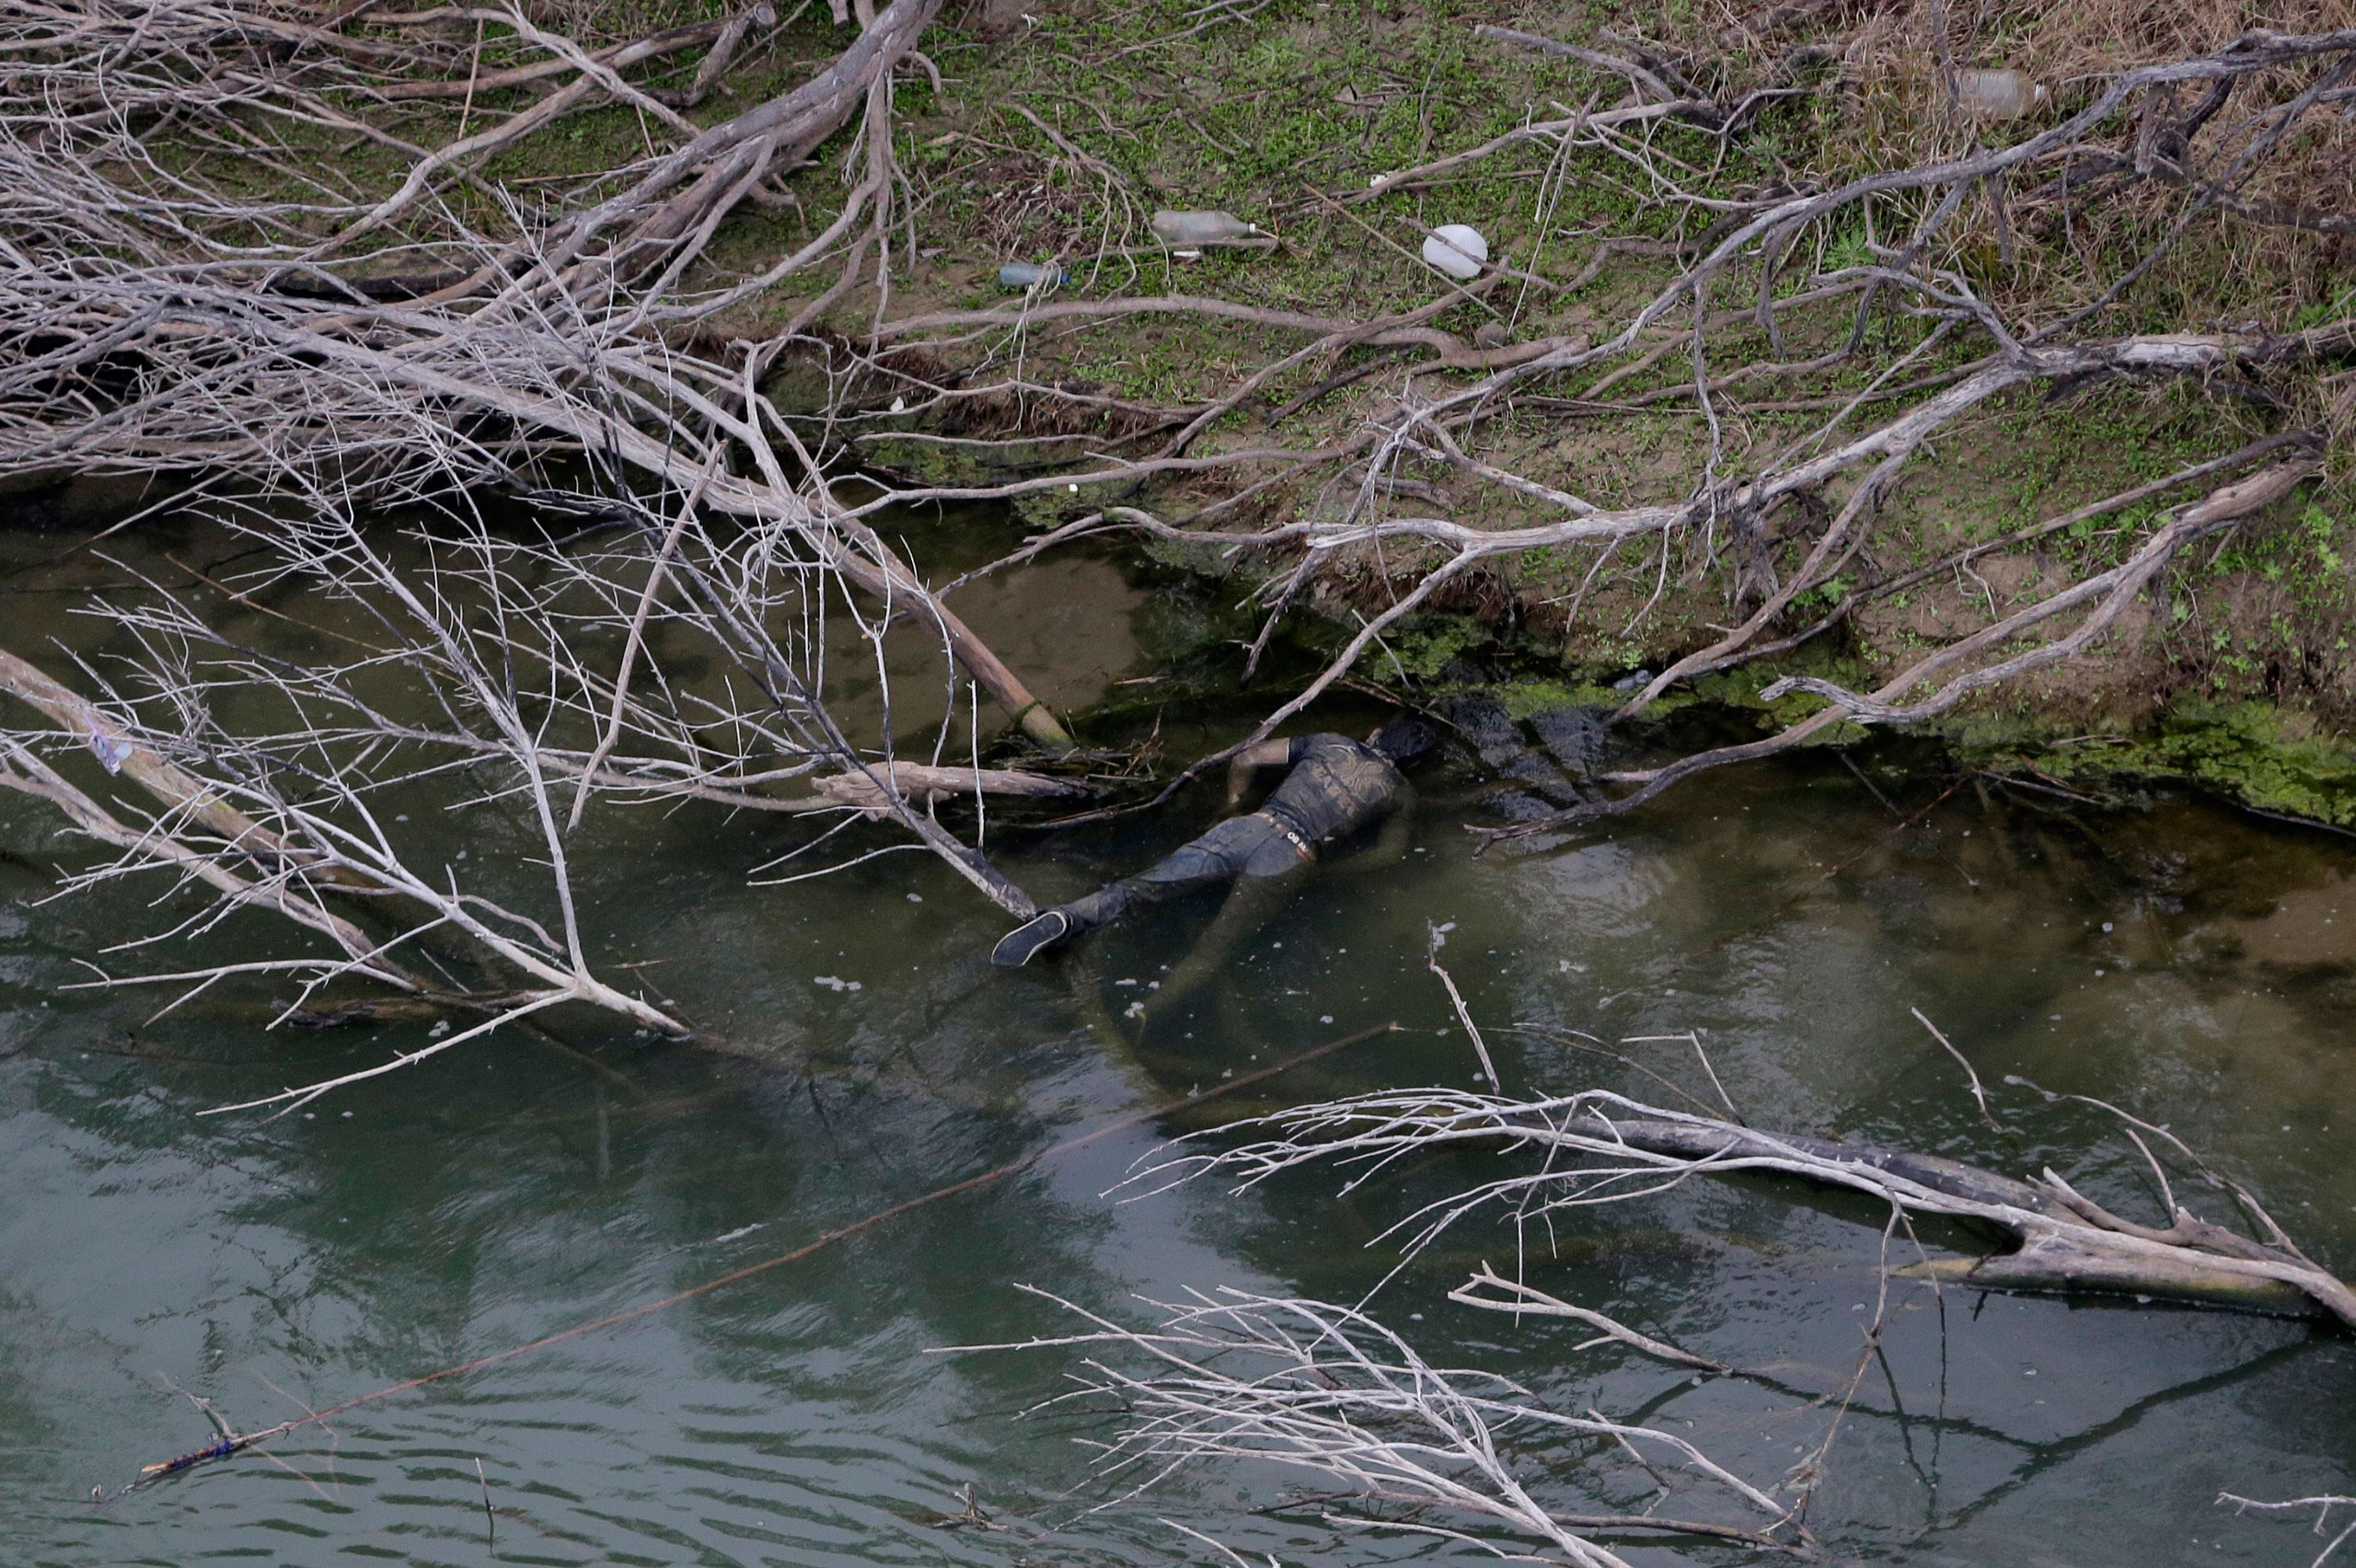 A body discovered by the U.S. Customs and Border Protection Air and Marine while on patrol near the Texas-Mexico border floats in the Rio Grande, in Rio Grande City, Texas. Feb. 24, 2015.